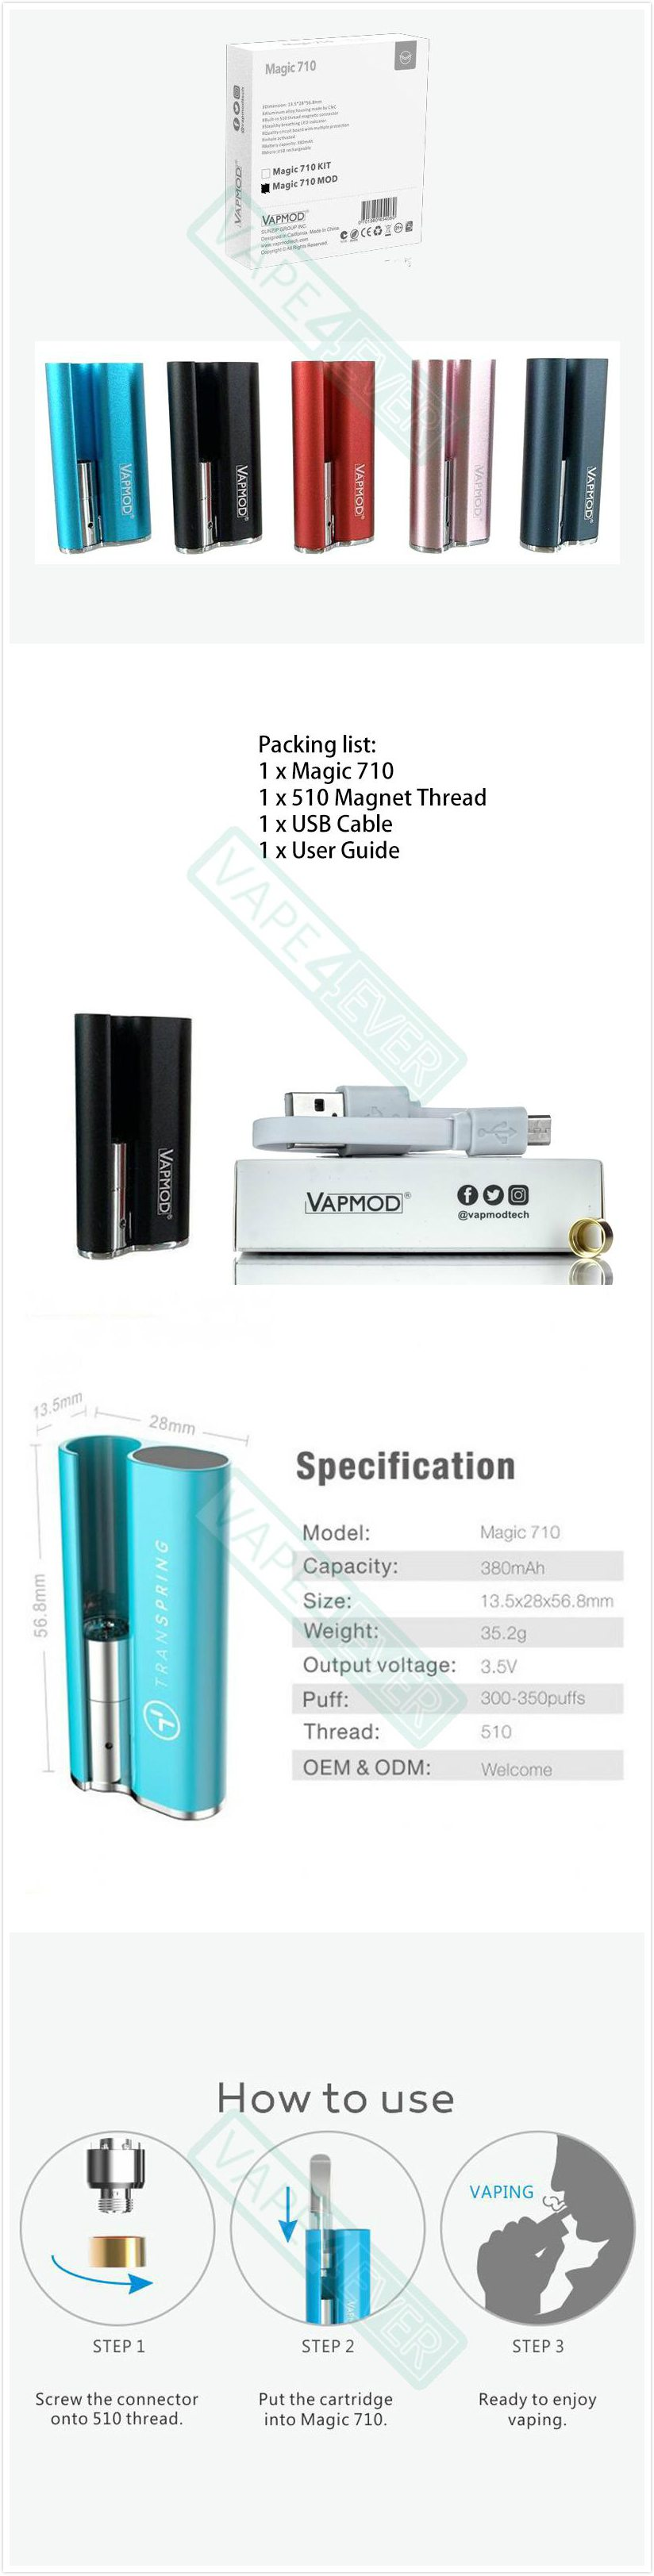 Vapmod Magic 710 Vaporizer Box Mod 380mAh Battery Compatible With 510 Atomizers Instruction